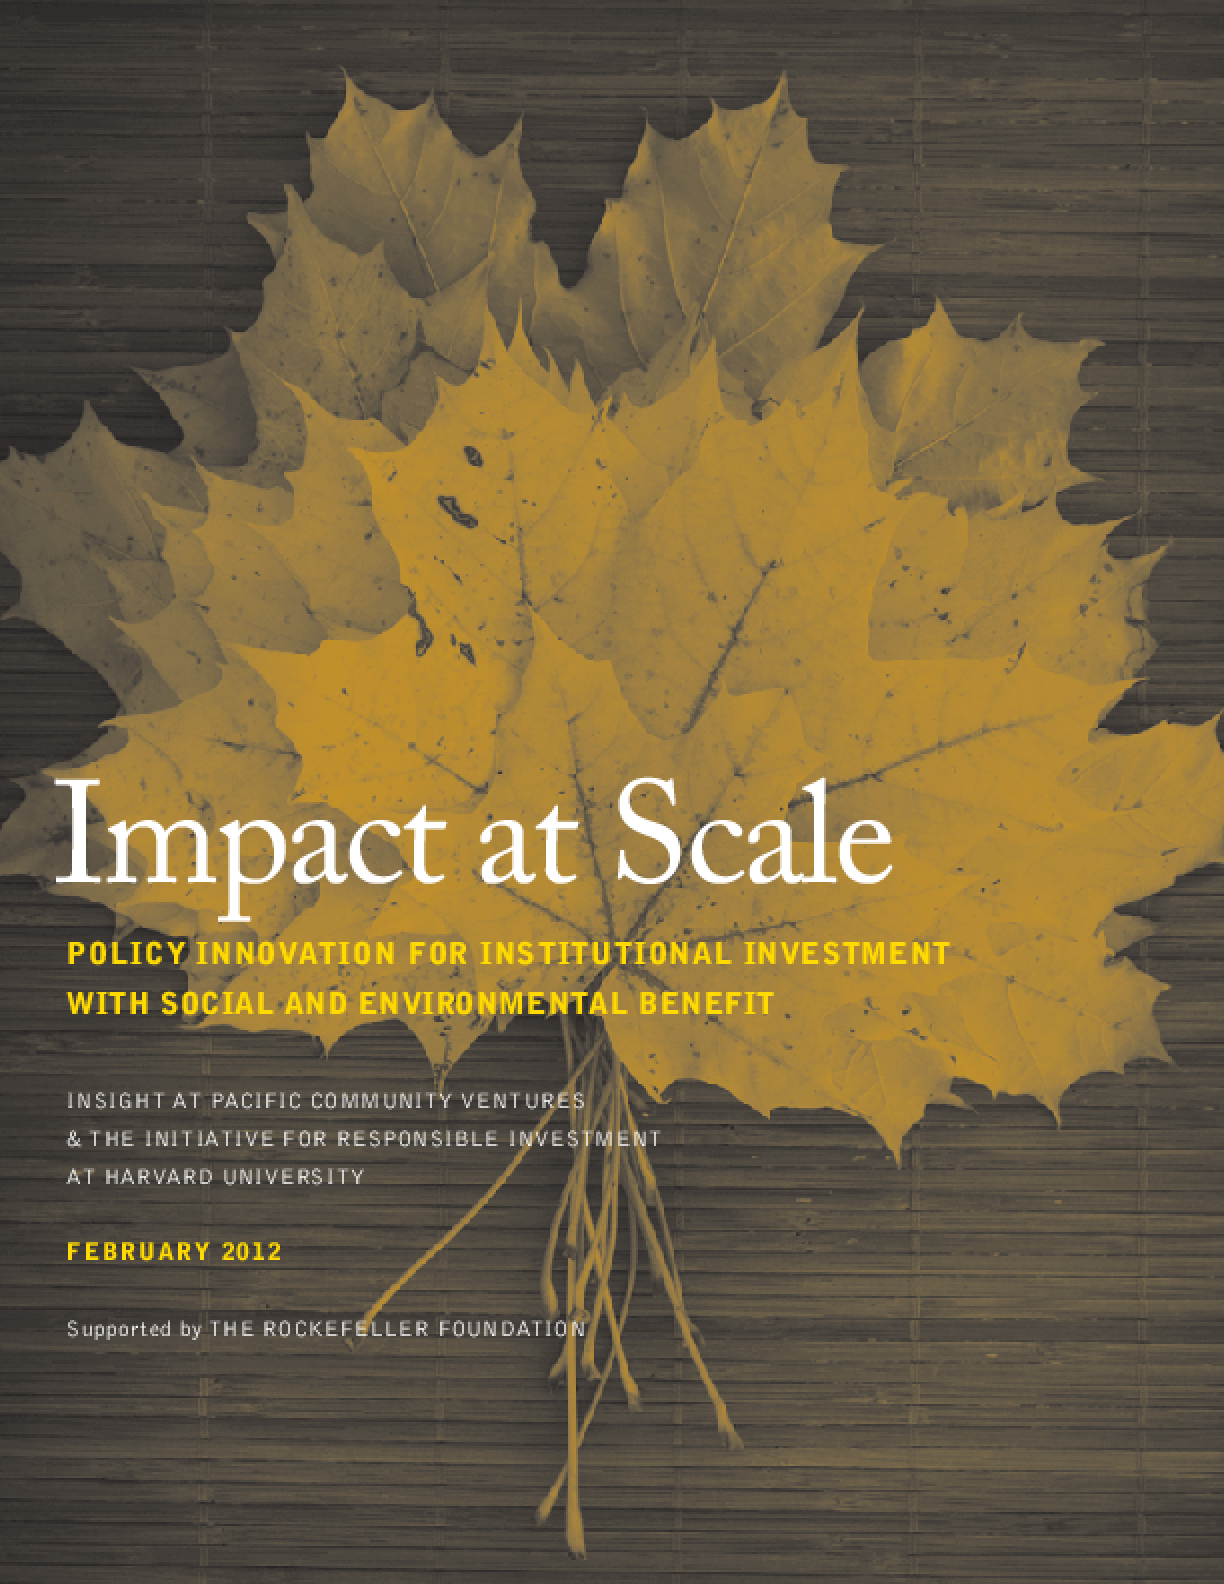 Impact at Scale: Policy Innovation for Institutional Investment With Social and Environmental Benefit